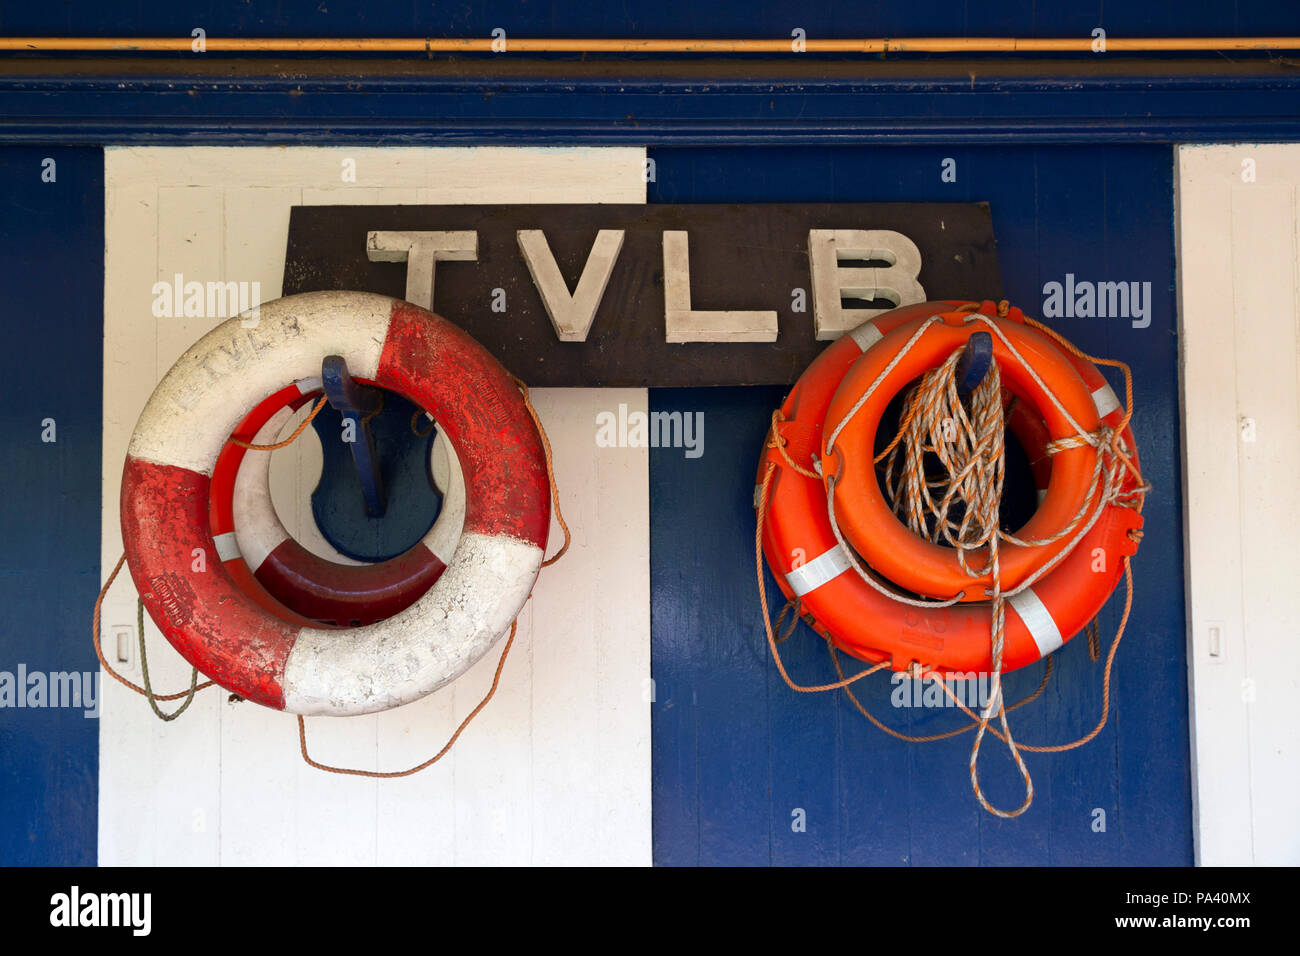 Flotation aids at Tynemouth in England. The devices hand on the exterior of the Tynemouth Volunteer Lifeboat Brigade watch house. Stock Photo